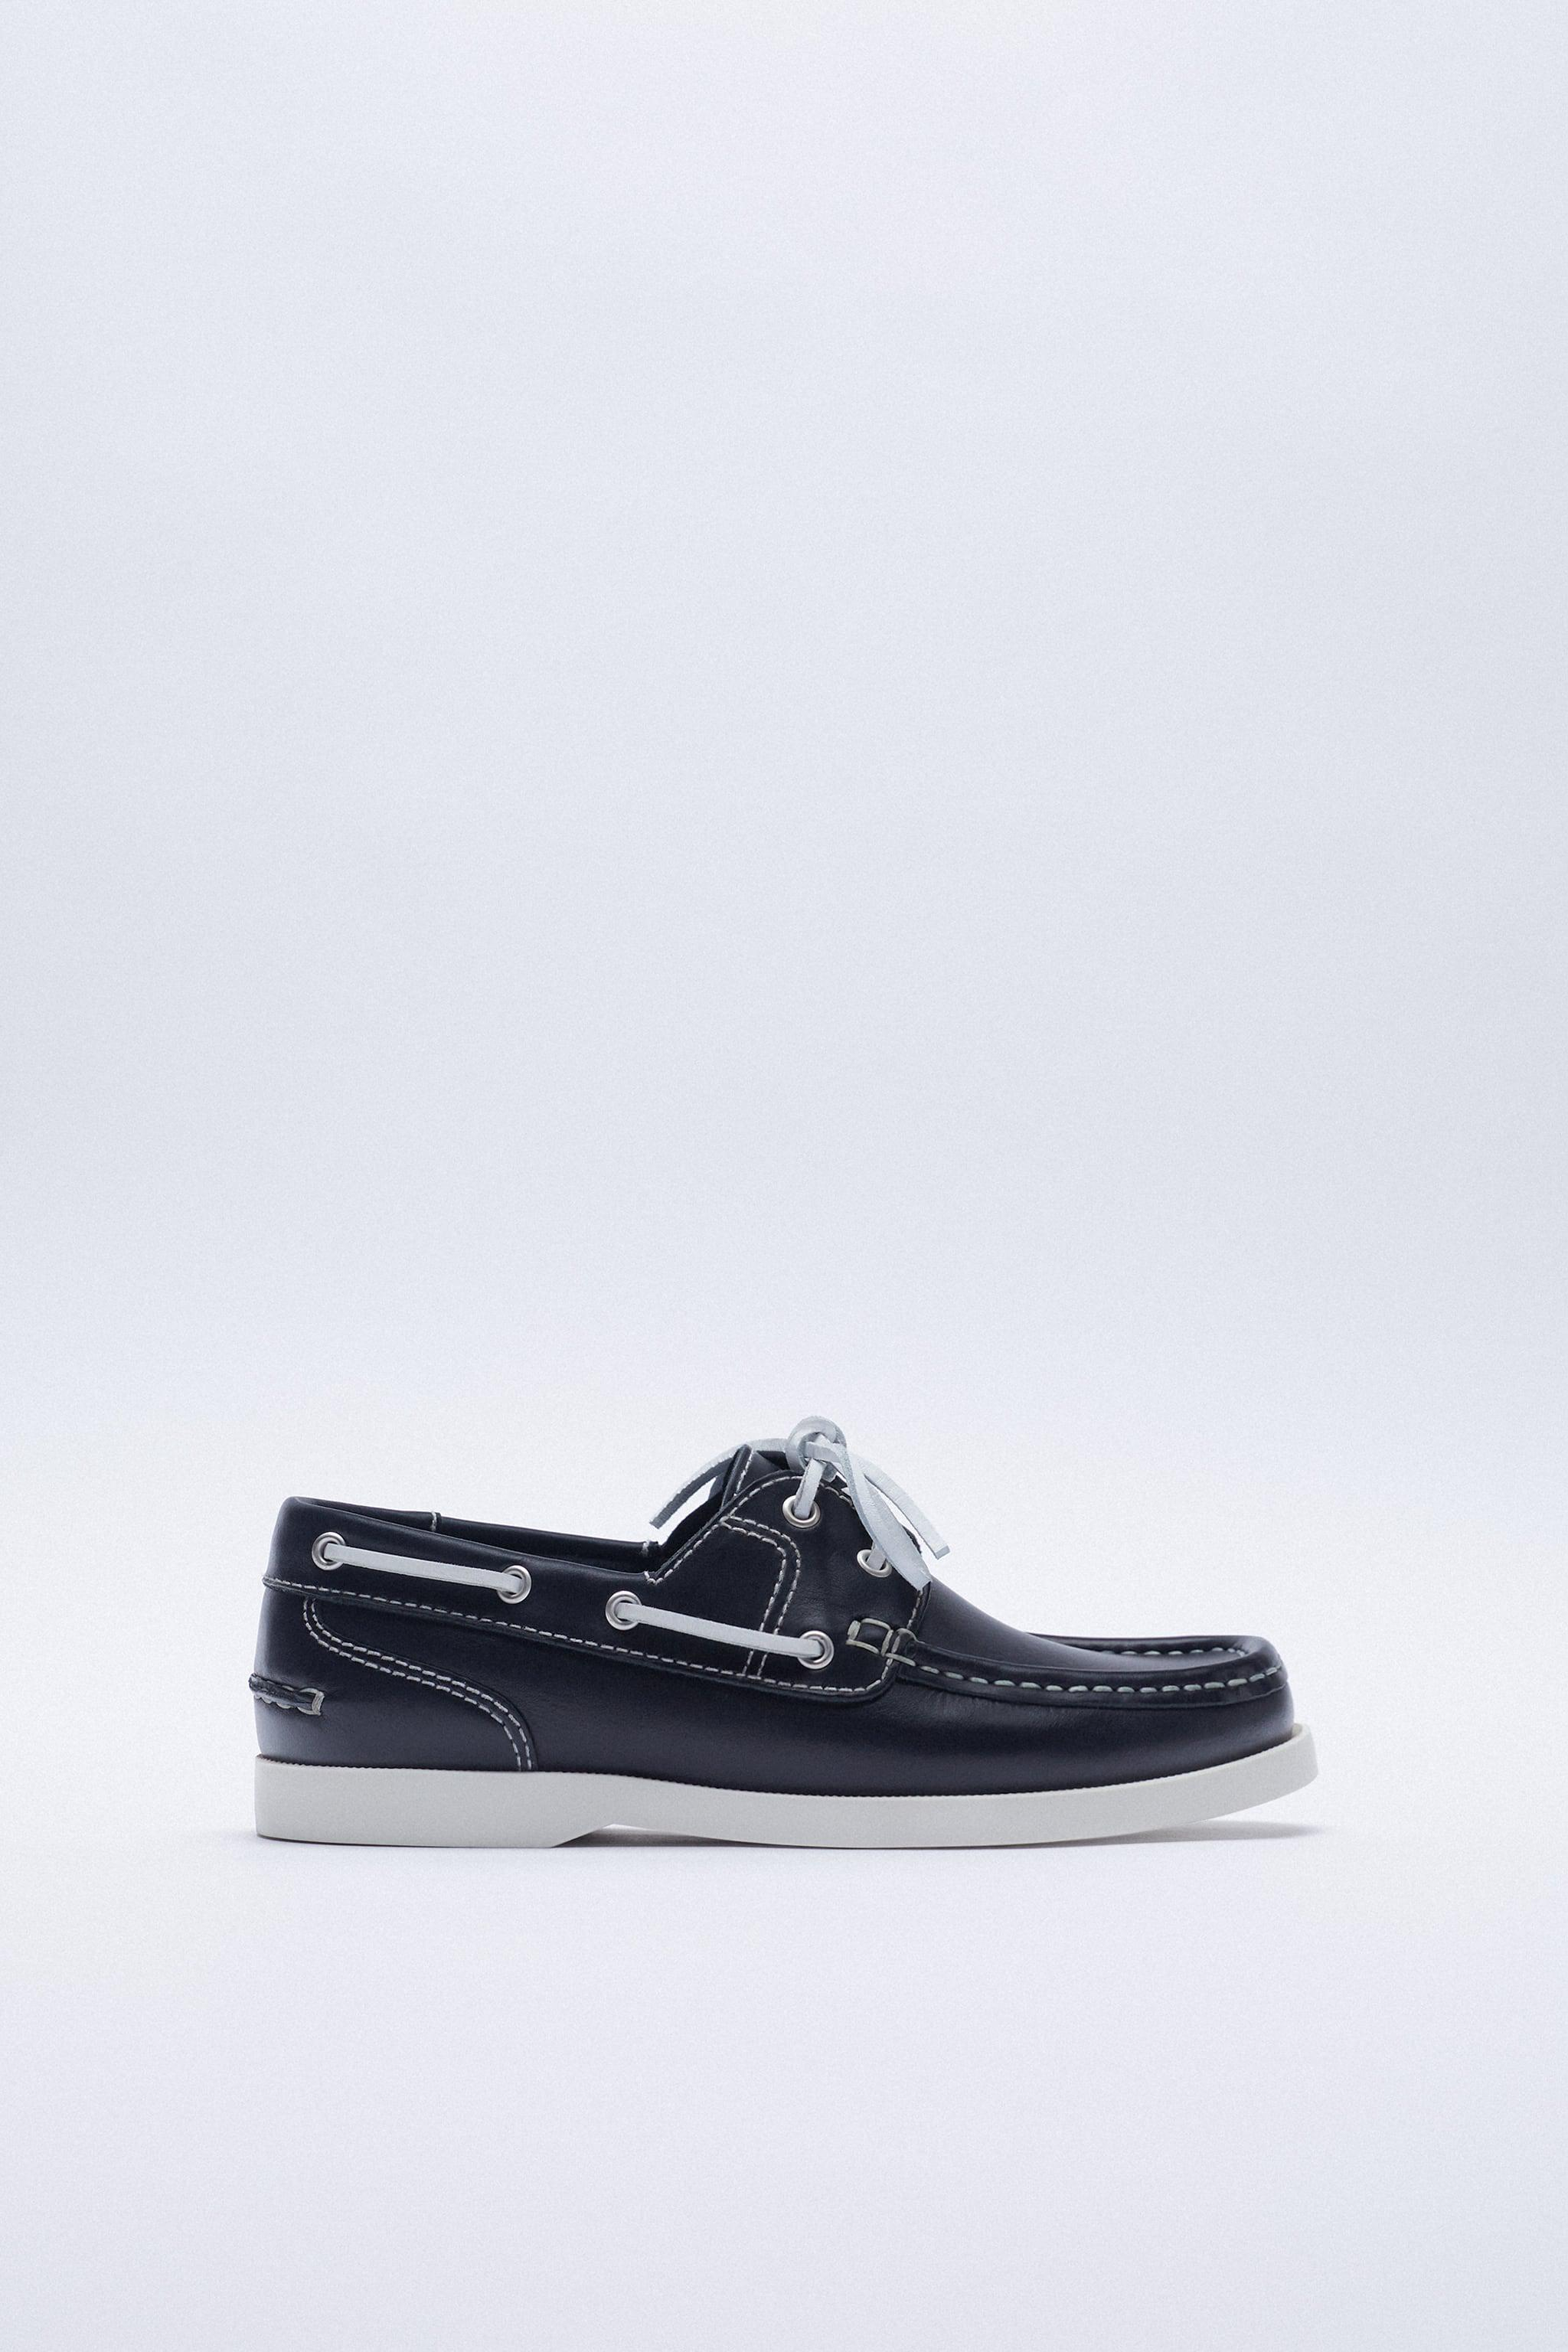 LOW HEEL LEATHER BOAT SHOES 2